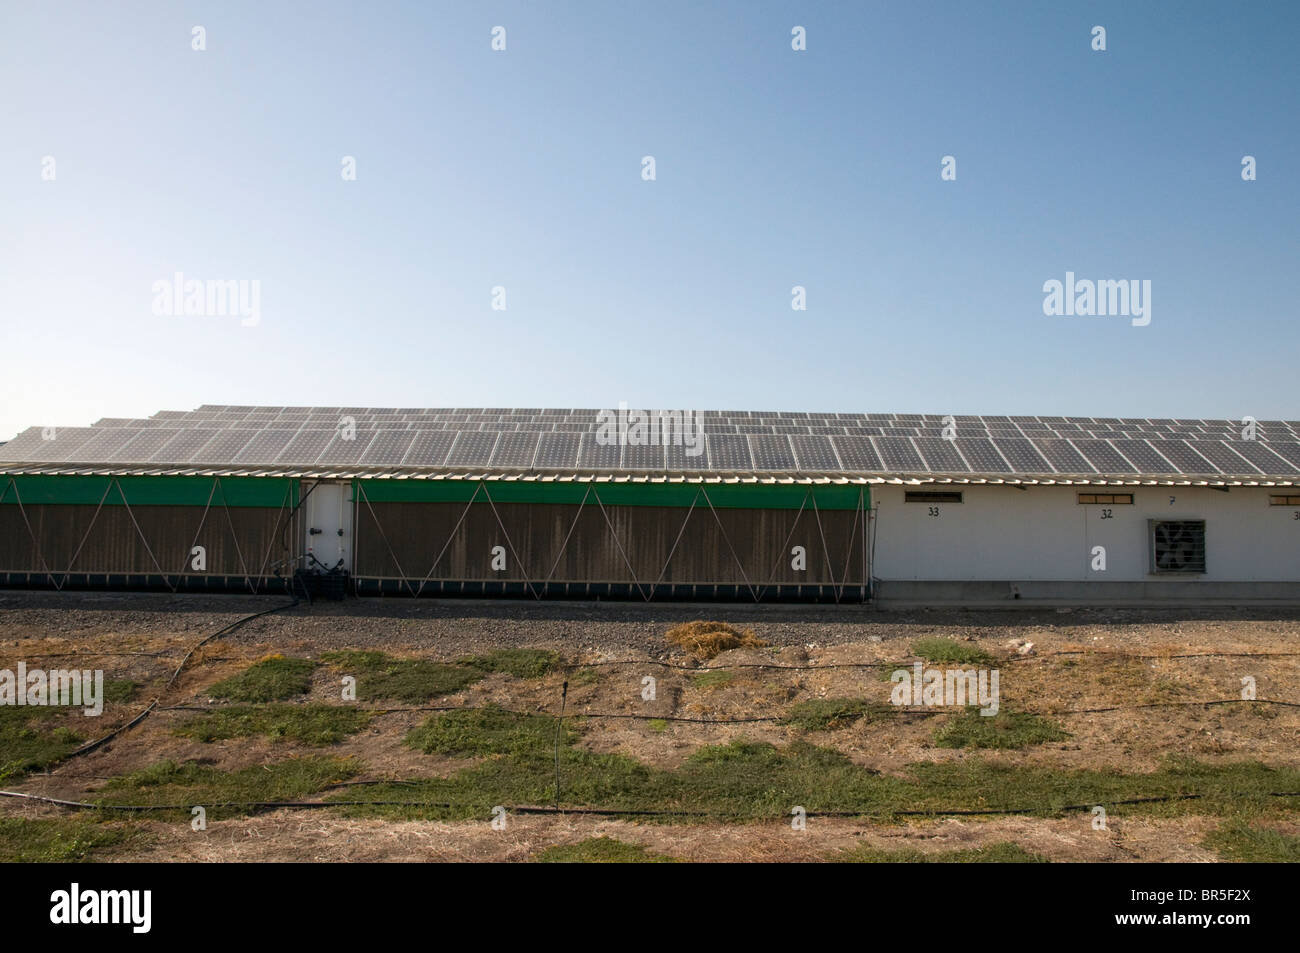 Electricity converting solar panels on a roof of a Turkey coop Stock Photo